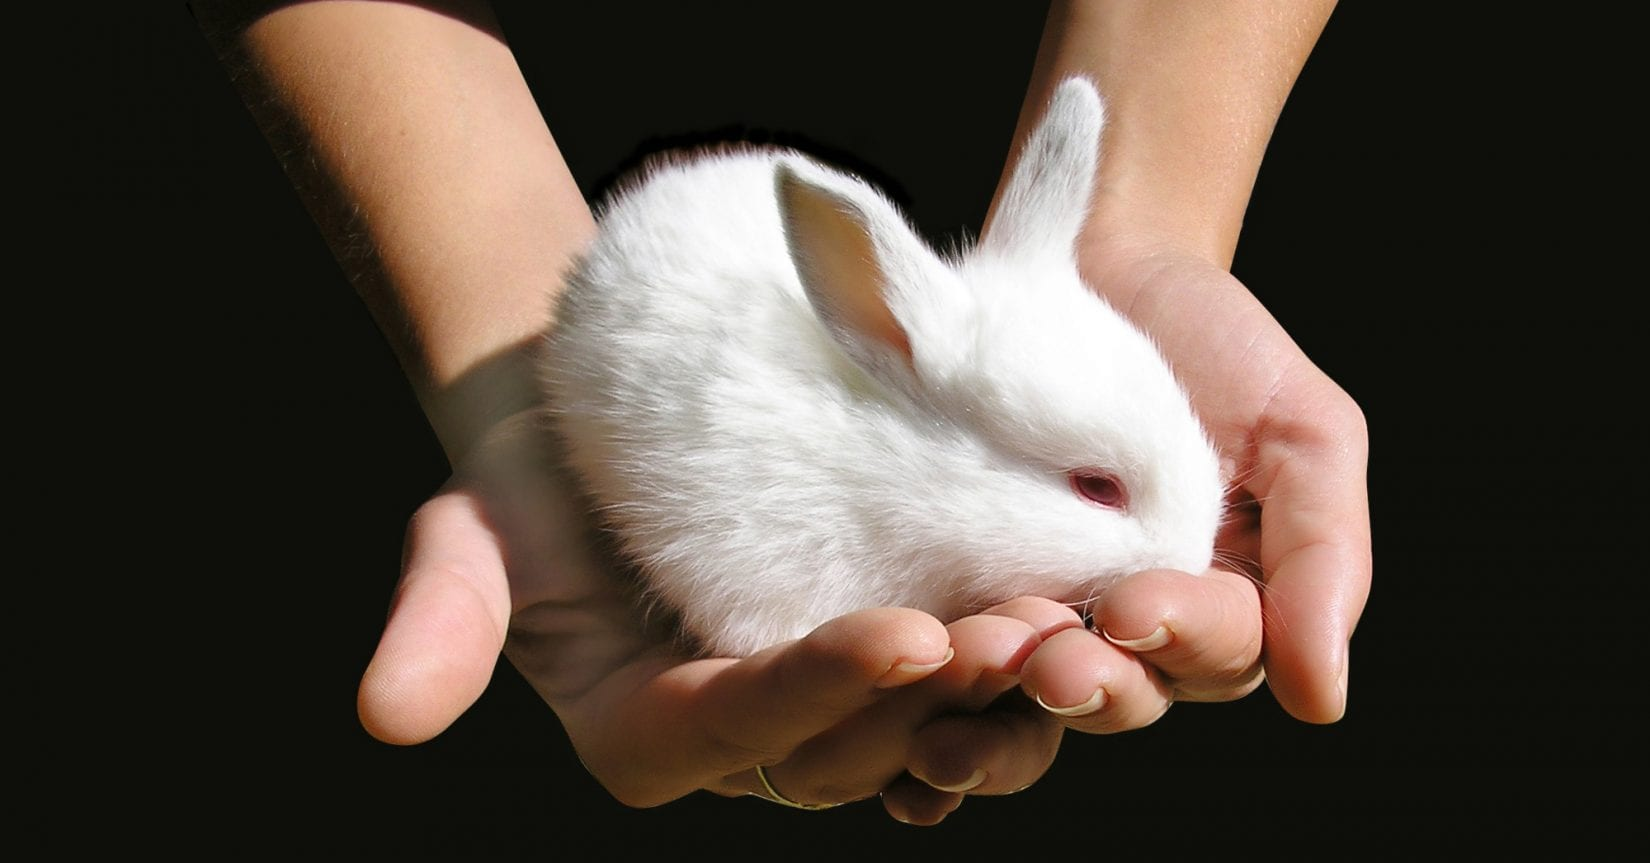 Canada to make cosmetic testing on animals illegal